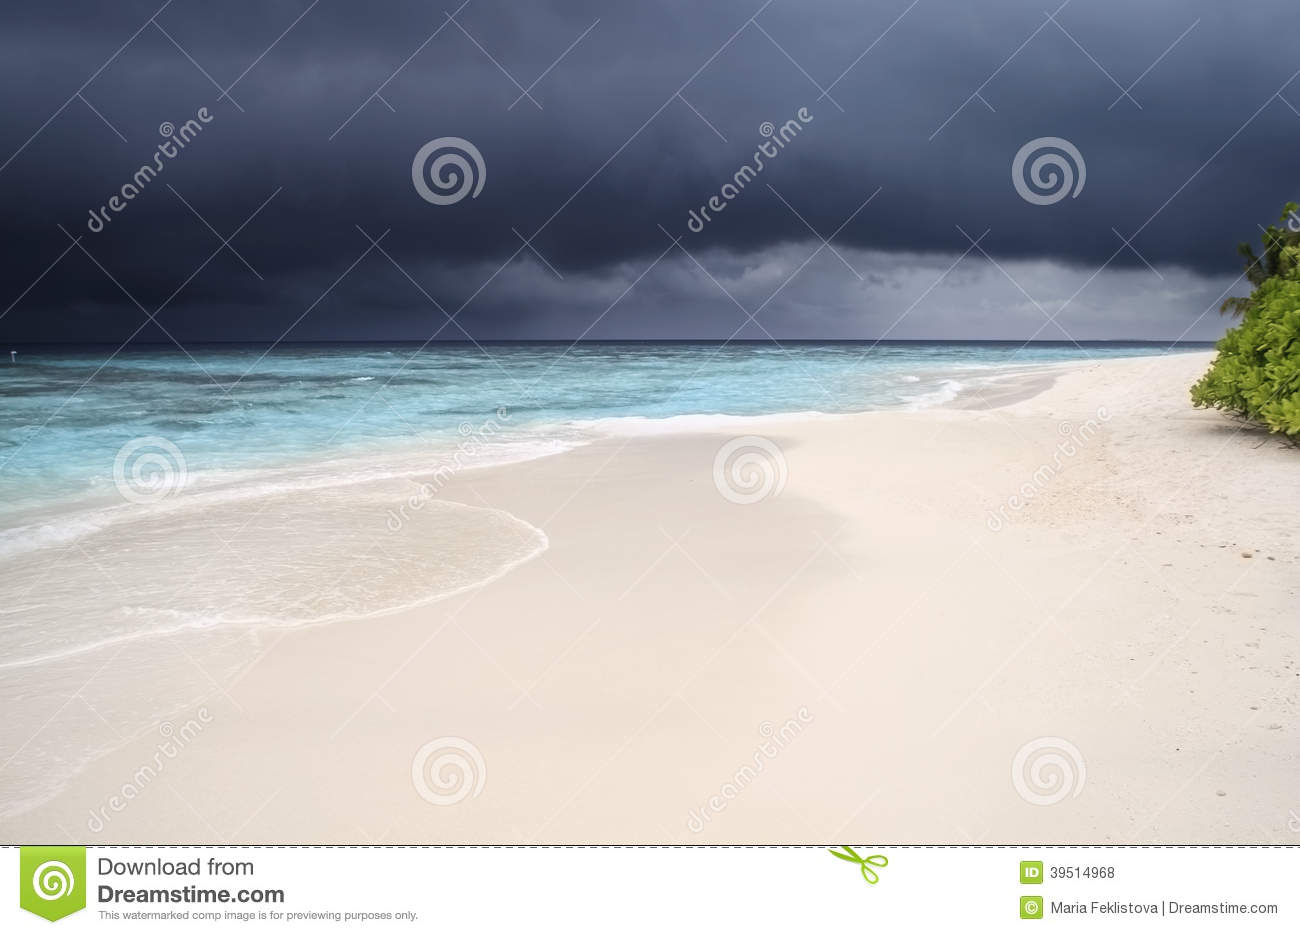 Storm is coming to the Maldives